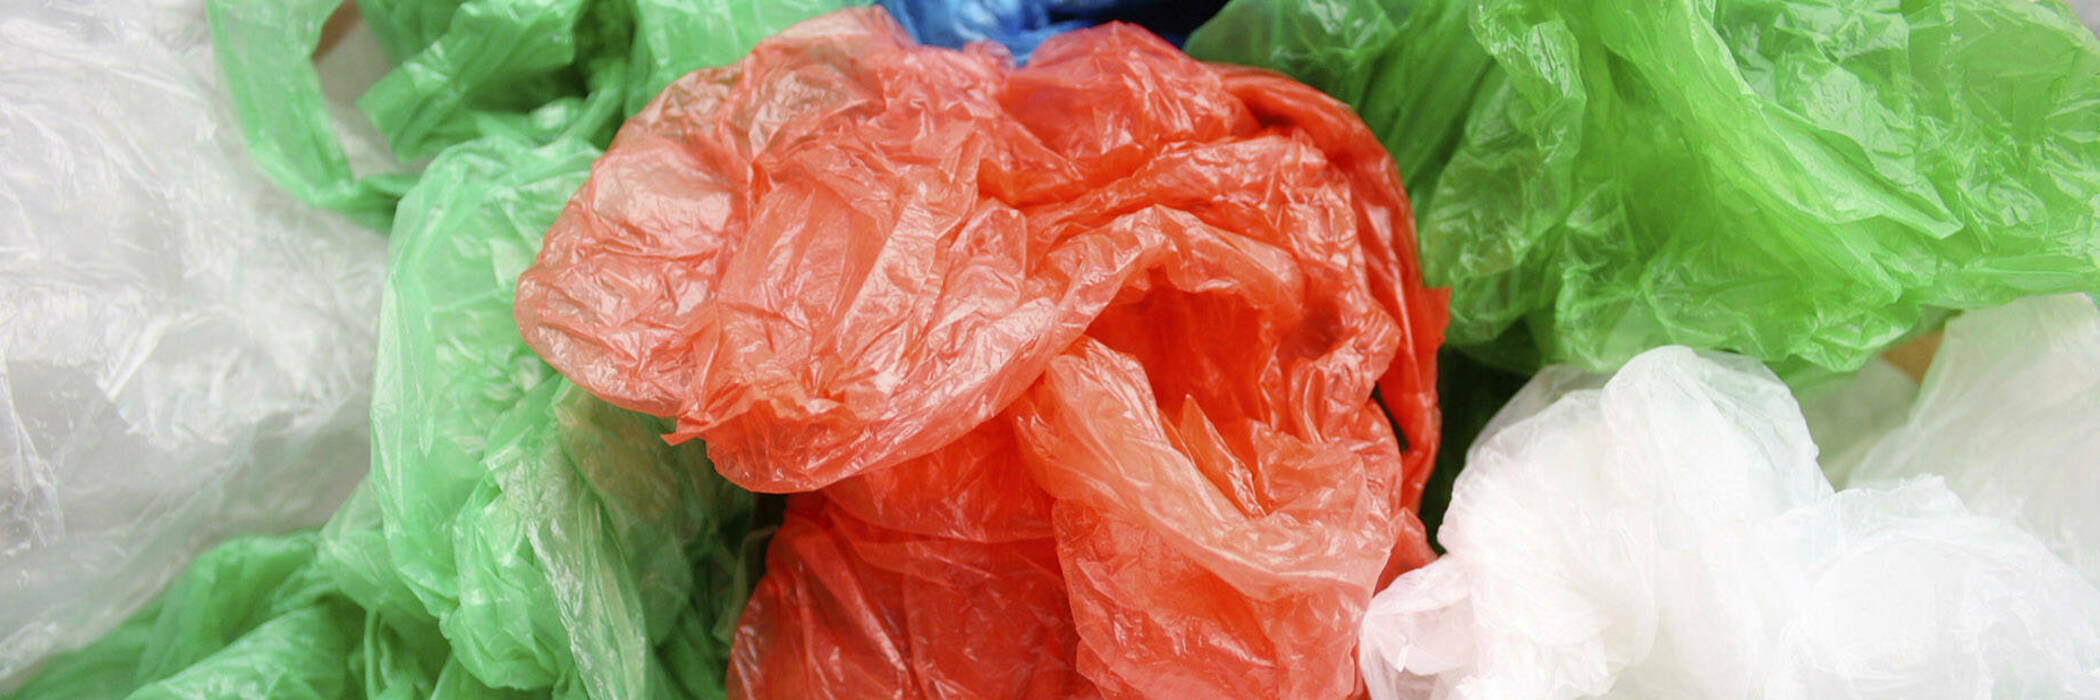 15july council calls for plastic bag levy hero